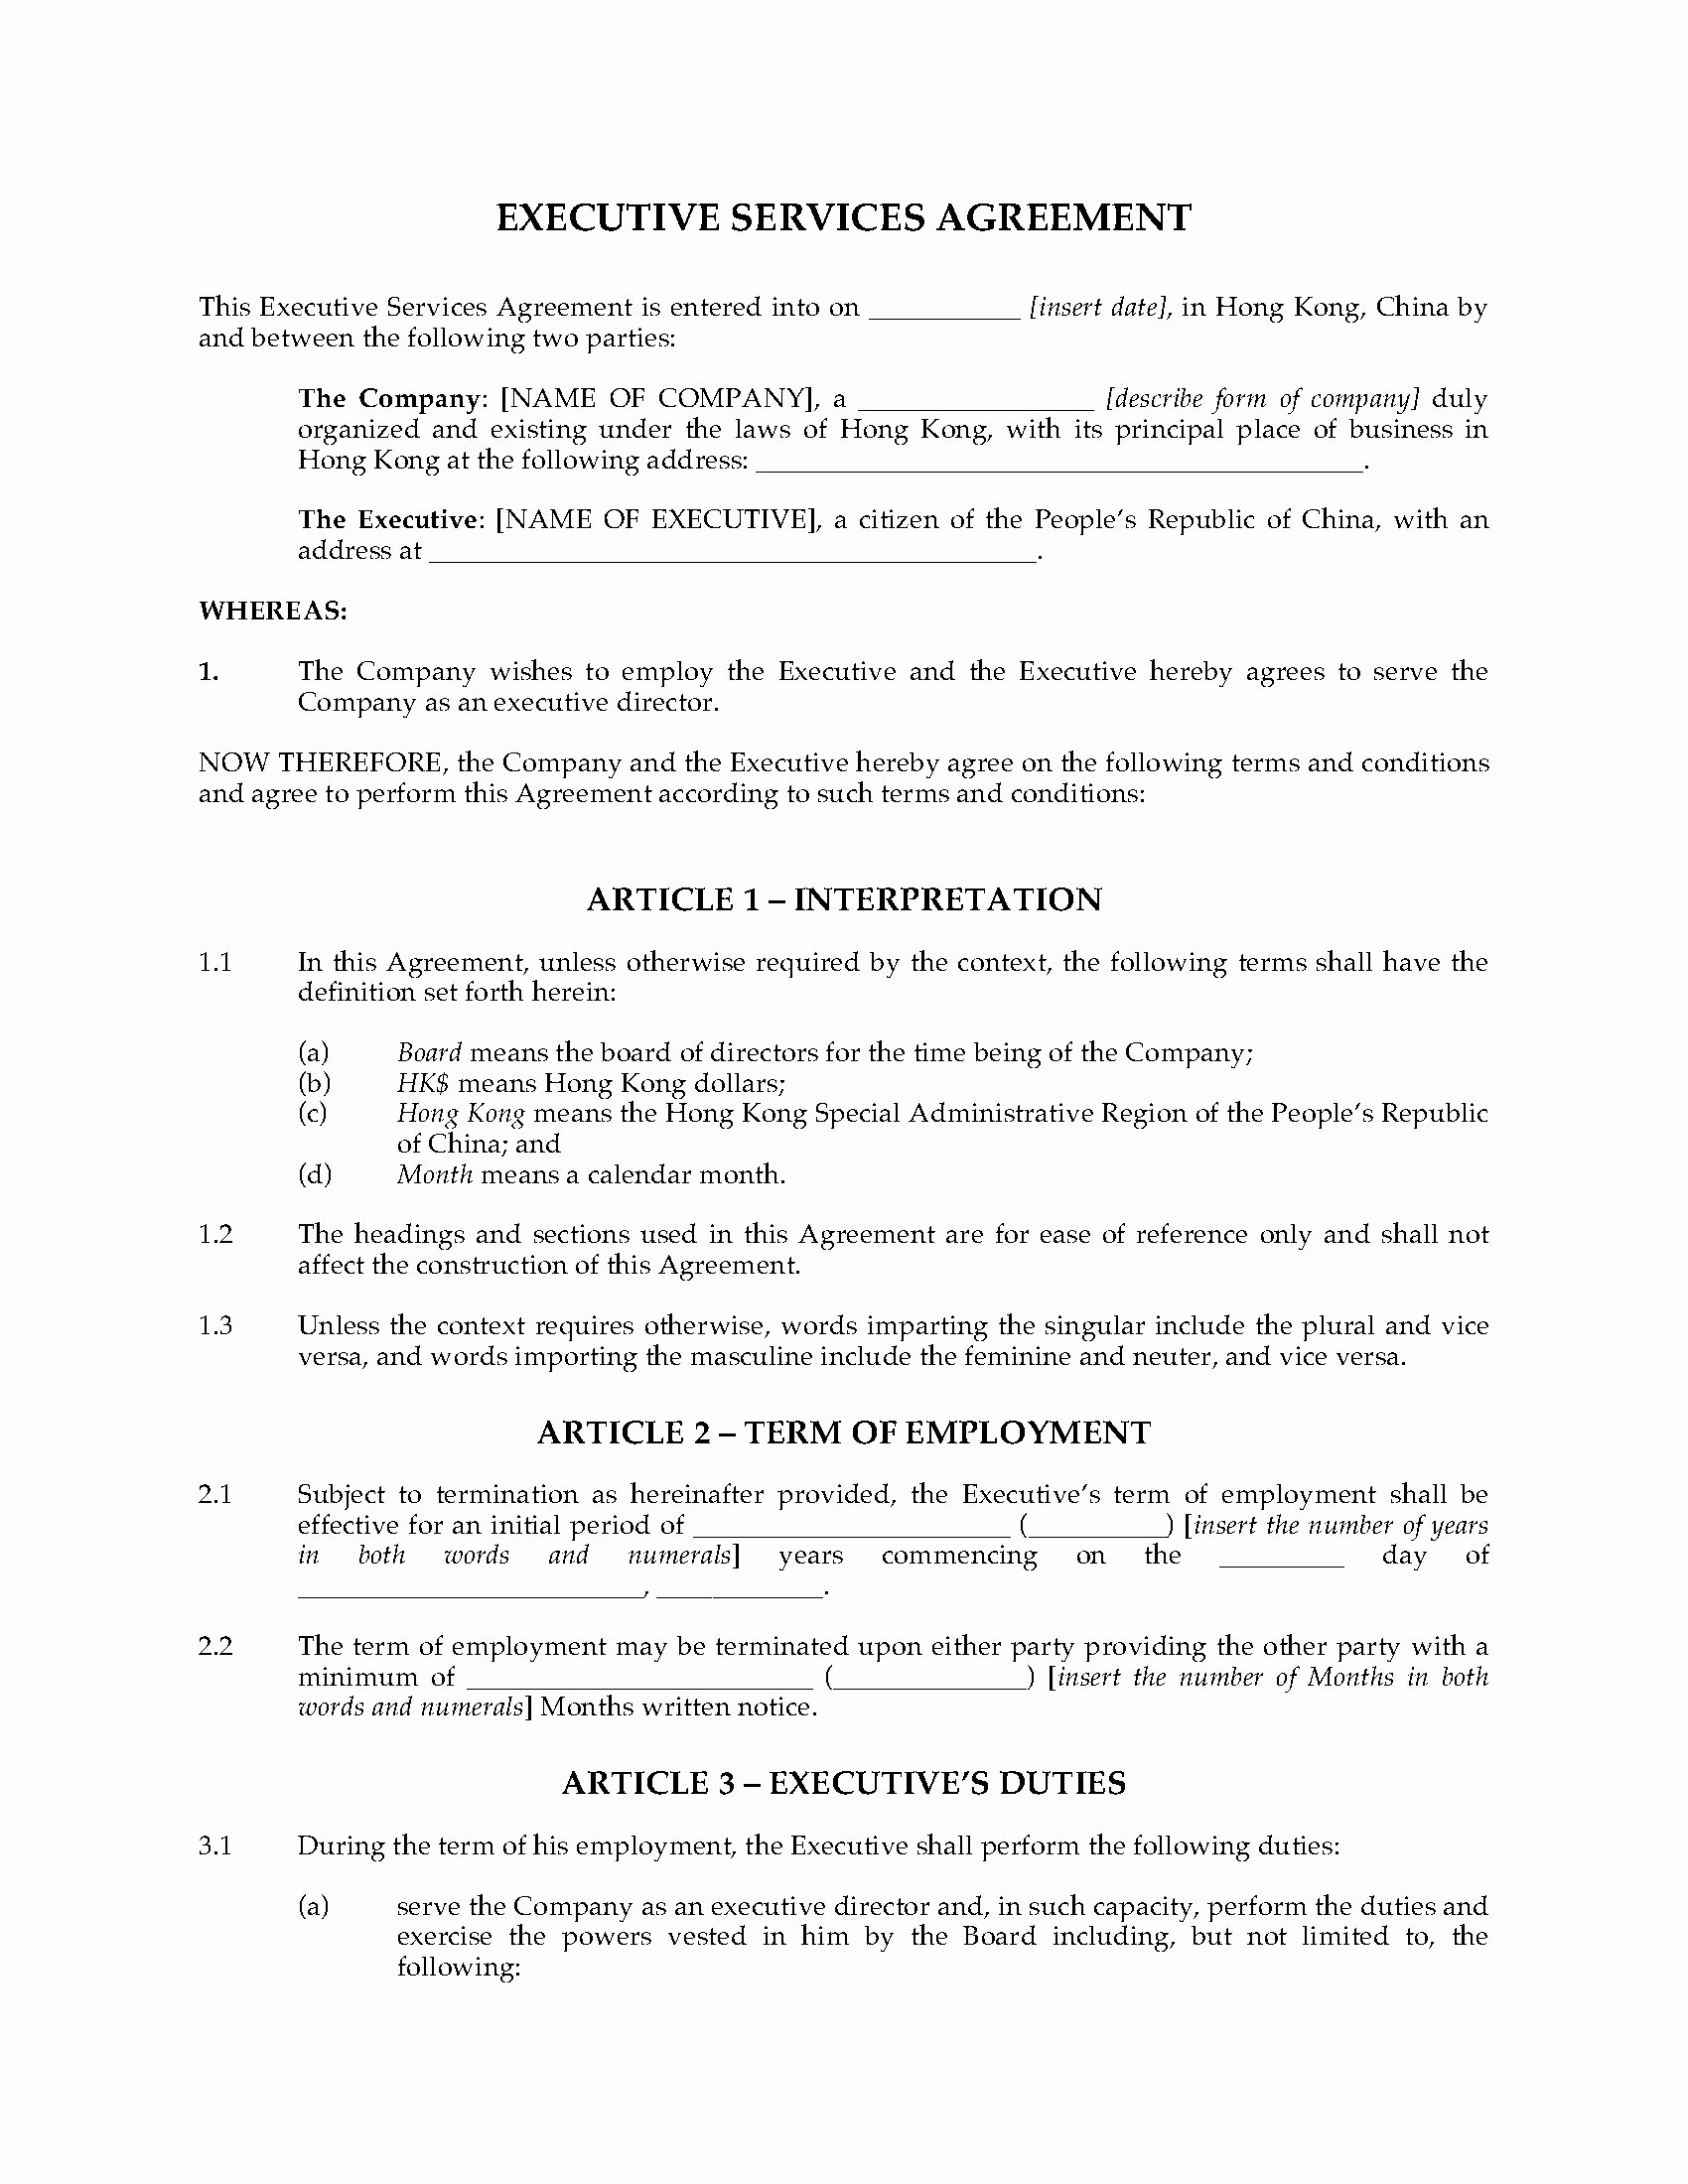 Non Compete Agreement Georgia Template Unique Hong Kong Executive Services Agreement